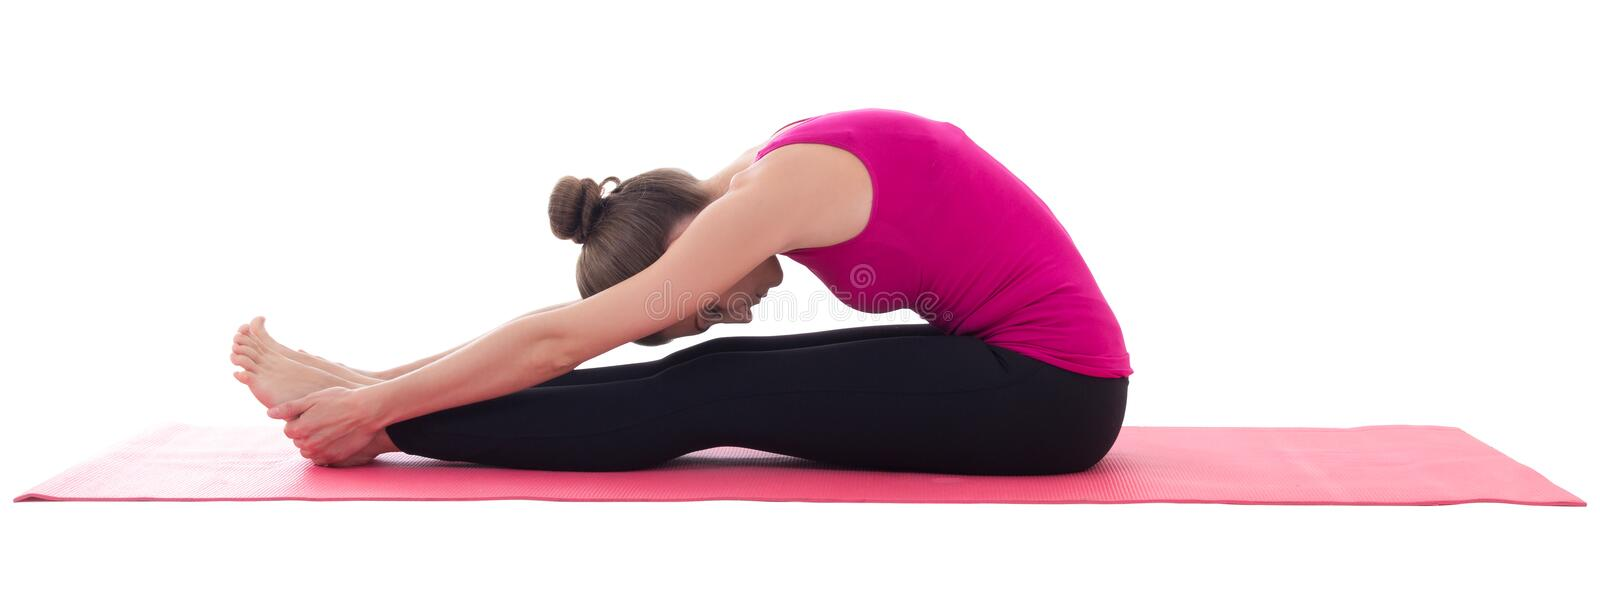 young beautiful woman doing stretching exercise on yoga mat isolated on white stock images